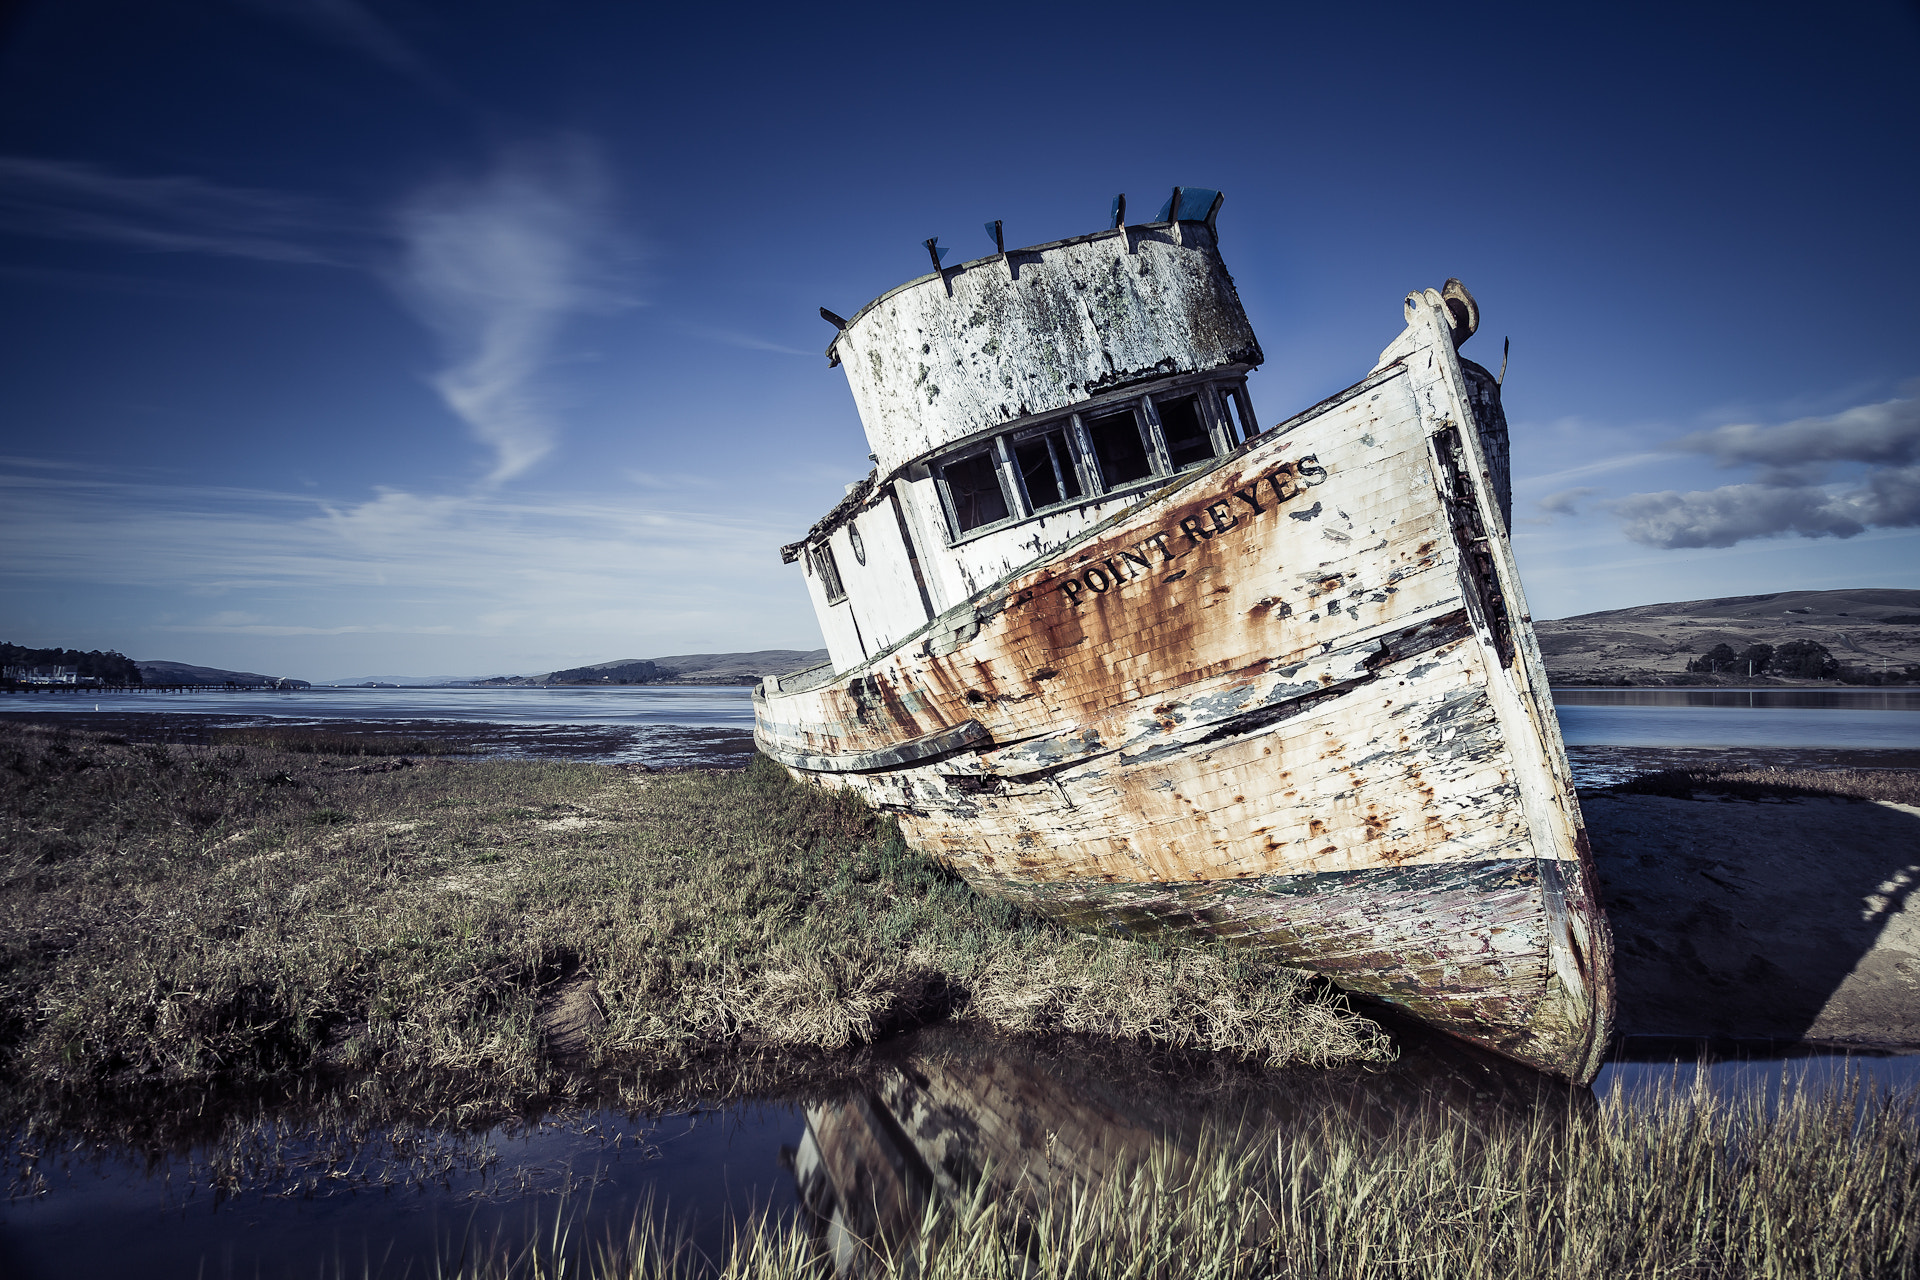 Photograph Point Reyes Boat by Jeremy Sallée on 500px